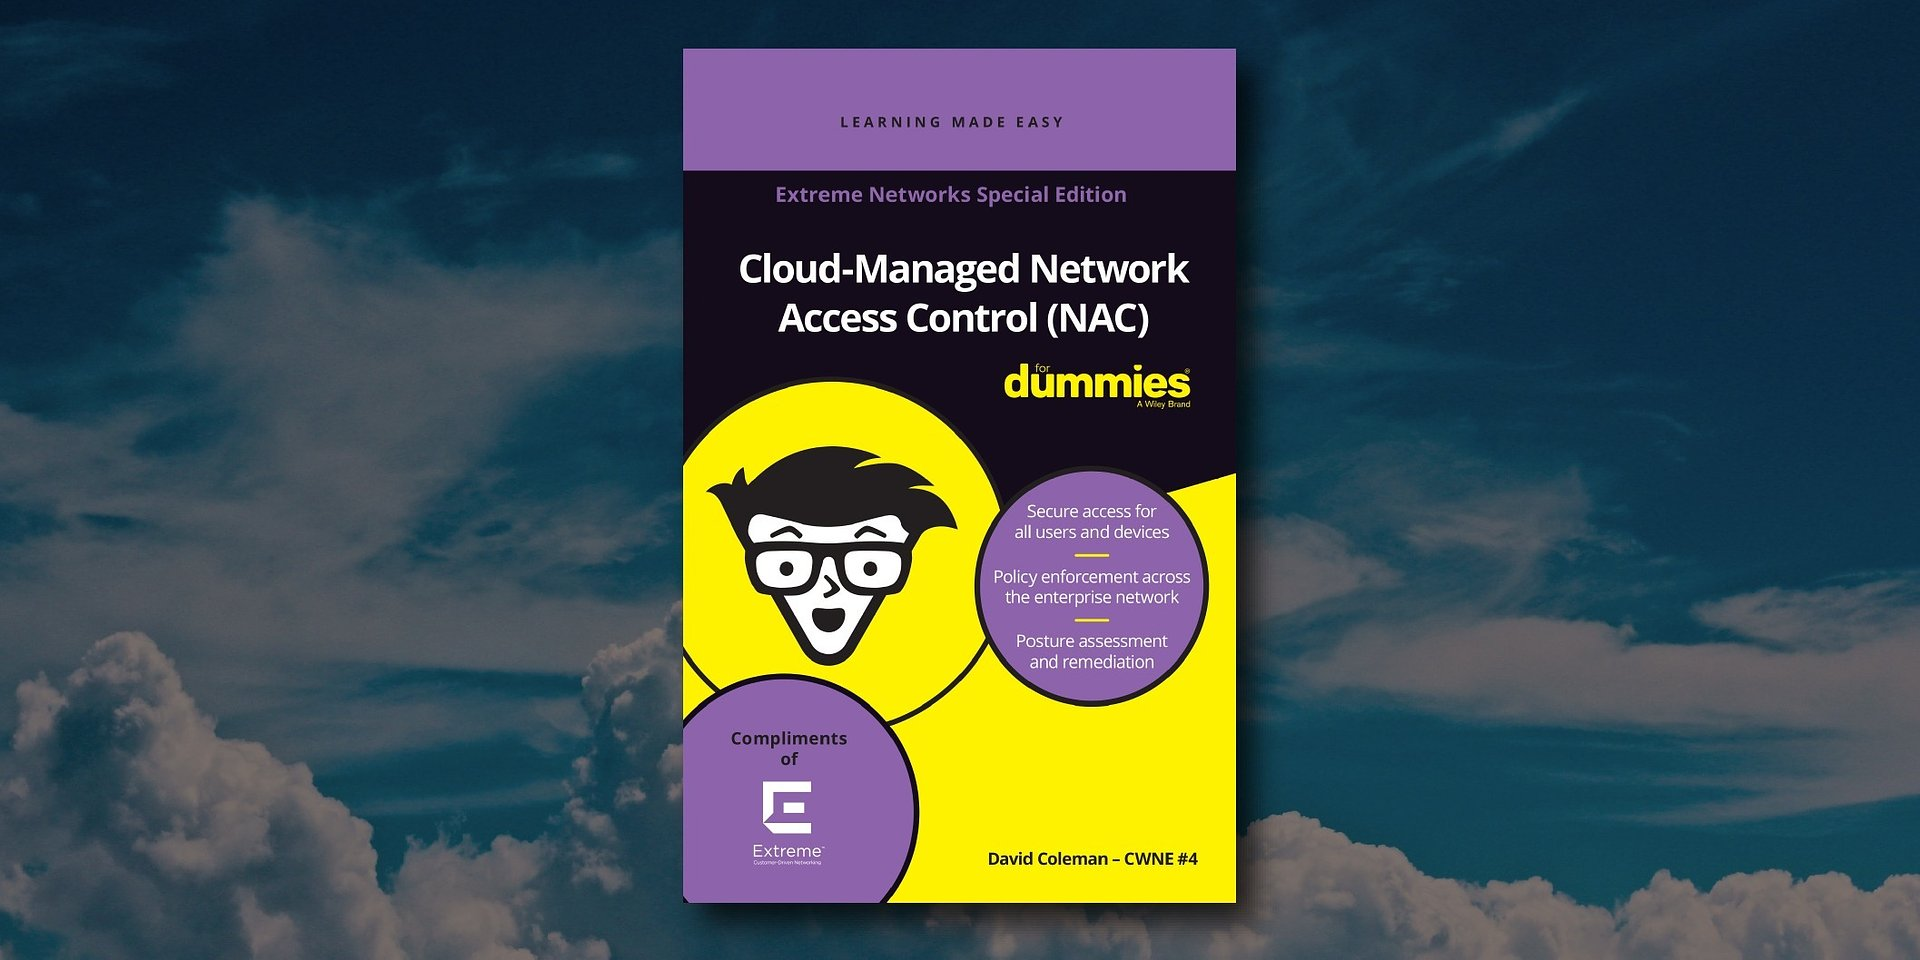 Cloud-Managed Network Access Control (NAC) for Dummies